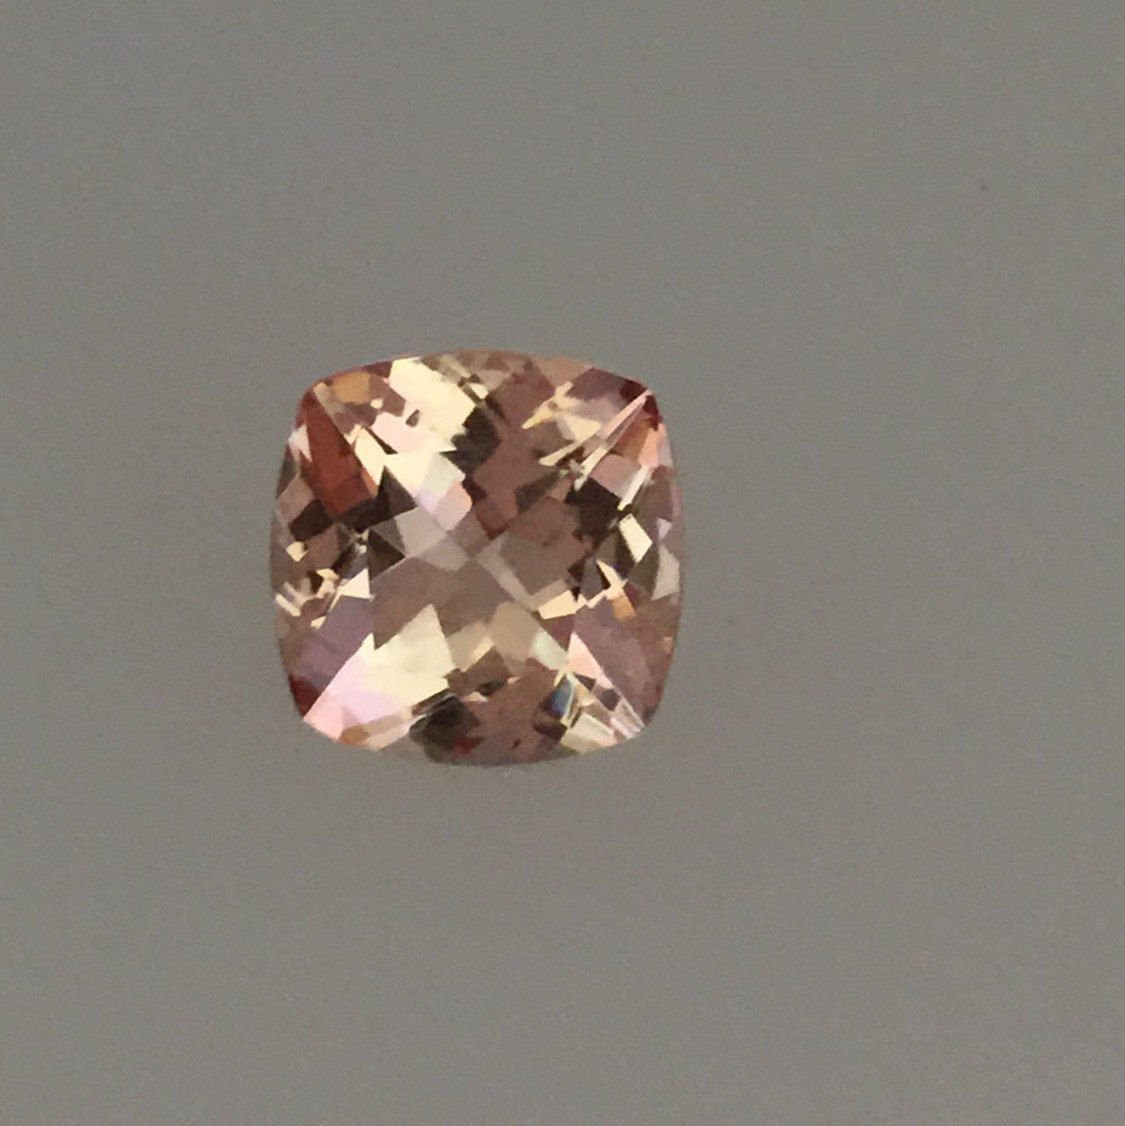 Natural Morganite 10mm Cushion  Faceted Cut 1 Piece Top Quality Peach Color Loose Gemstone